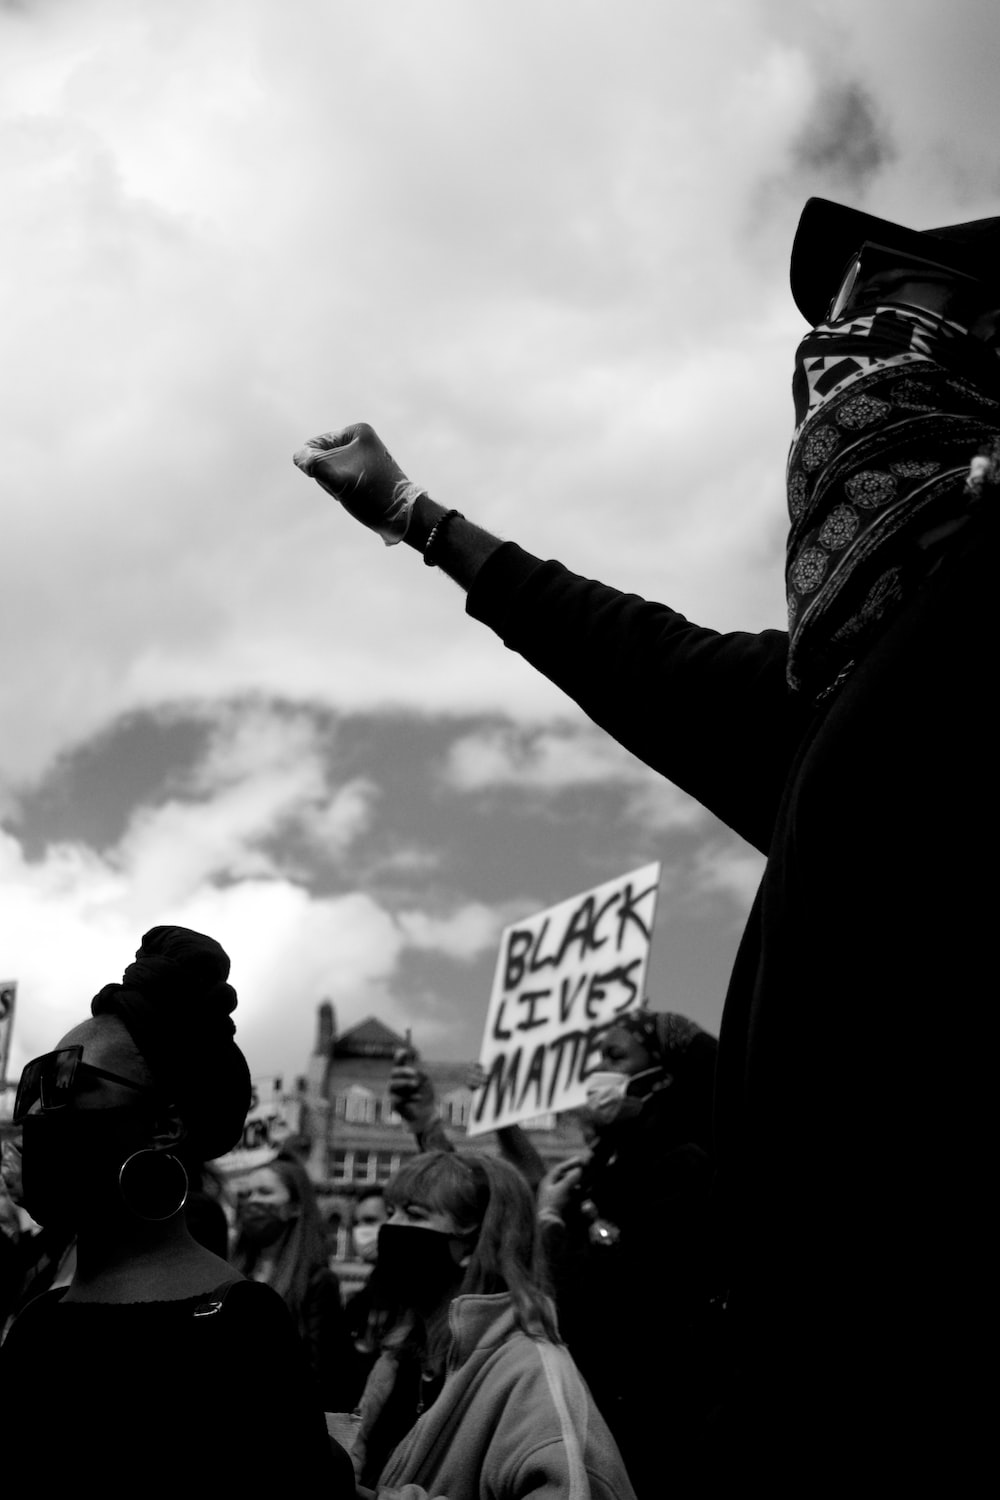 grayscale photo of person holding signage